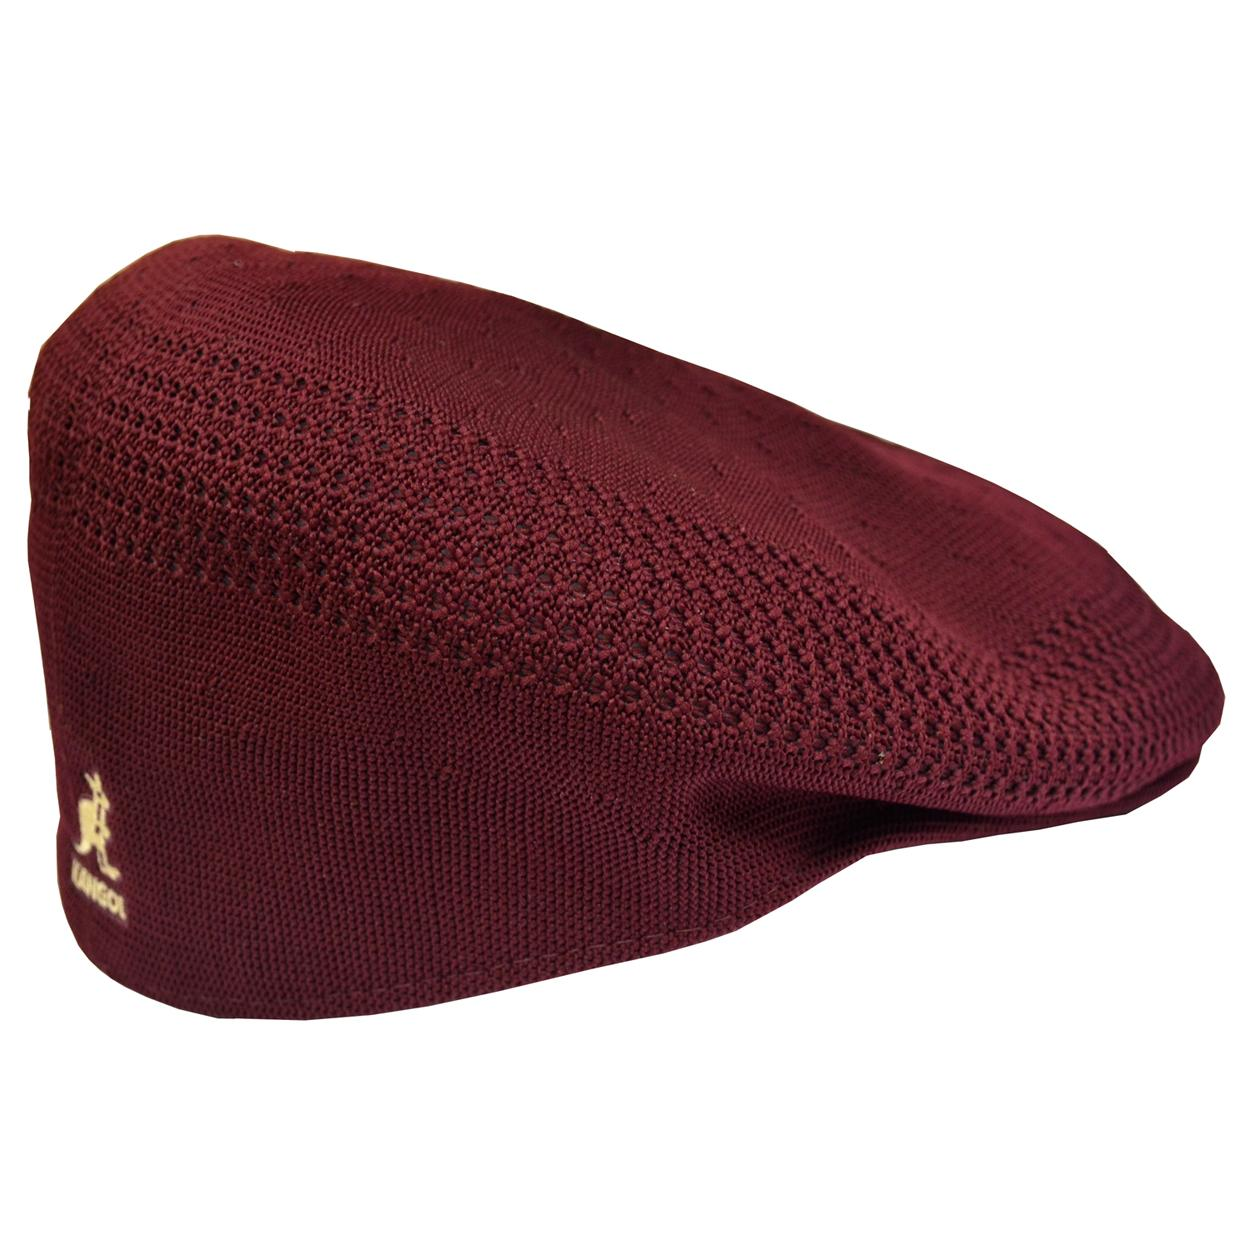 Kangol Burgundy Tropic 504 Ventair Cap